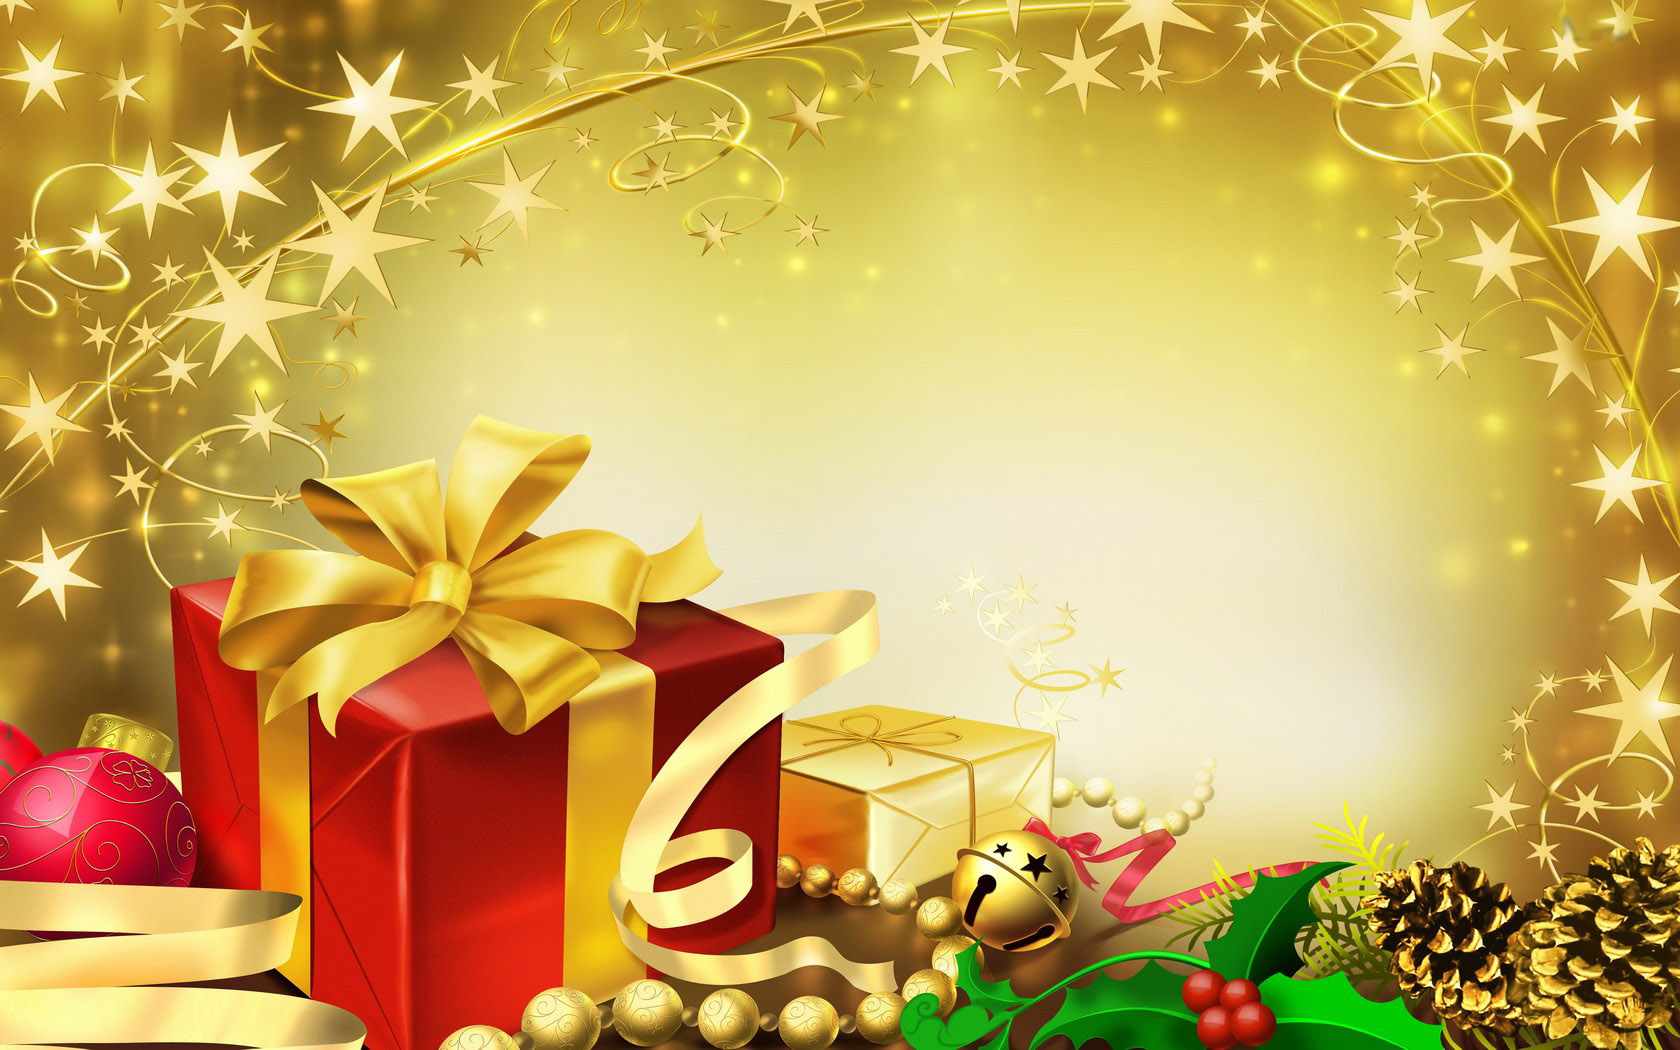 Christmas images gold x mass HD wallpaper and background photos ...